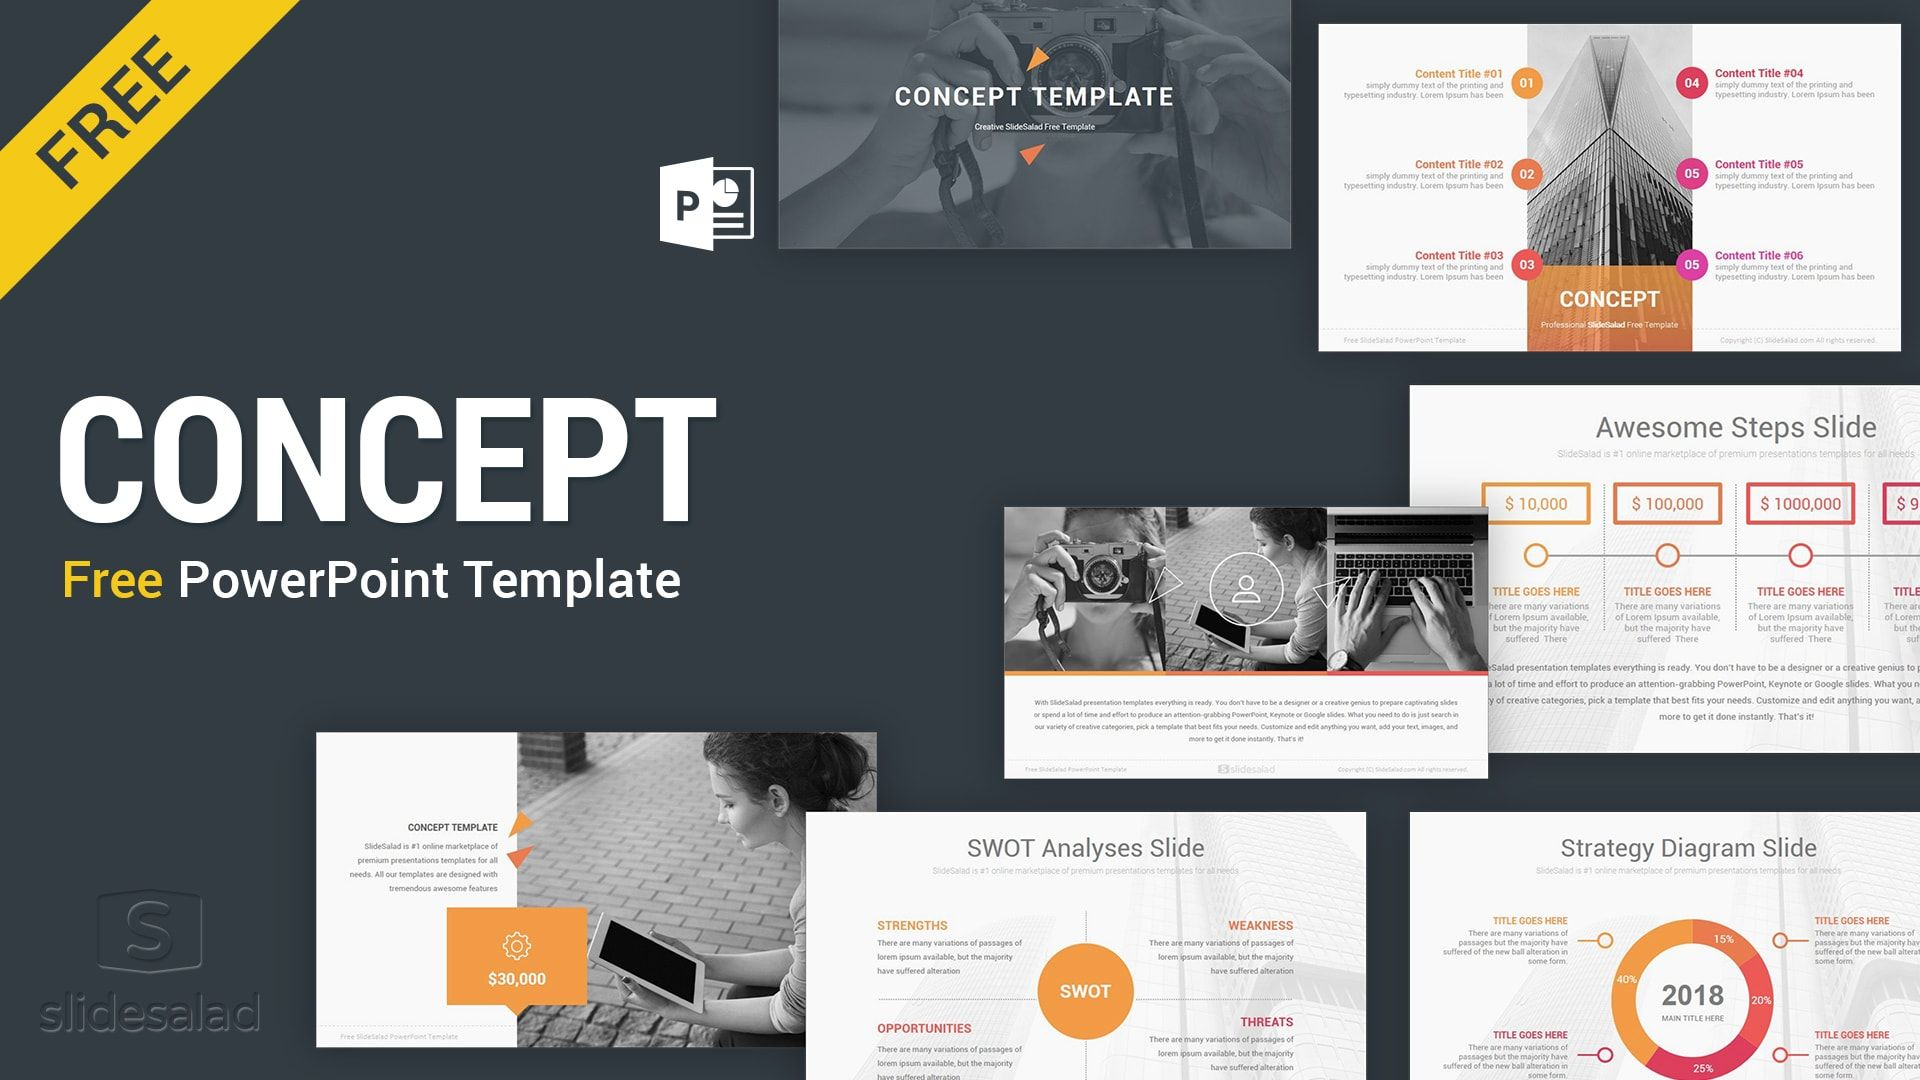 The Awesome Presentation Templates For Powerpoint Free Download Business Througho Powerpoint Free Free Powerpoint Presentations Business Presentation Templates Power point presentation template free